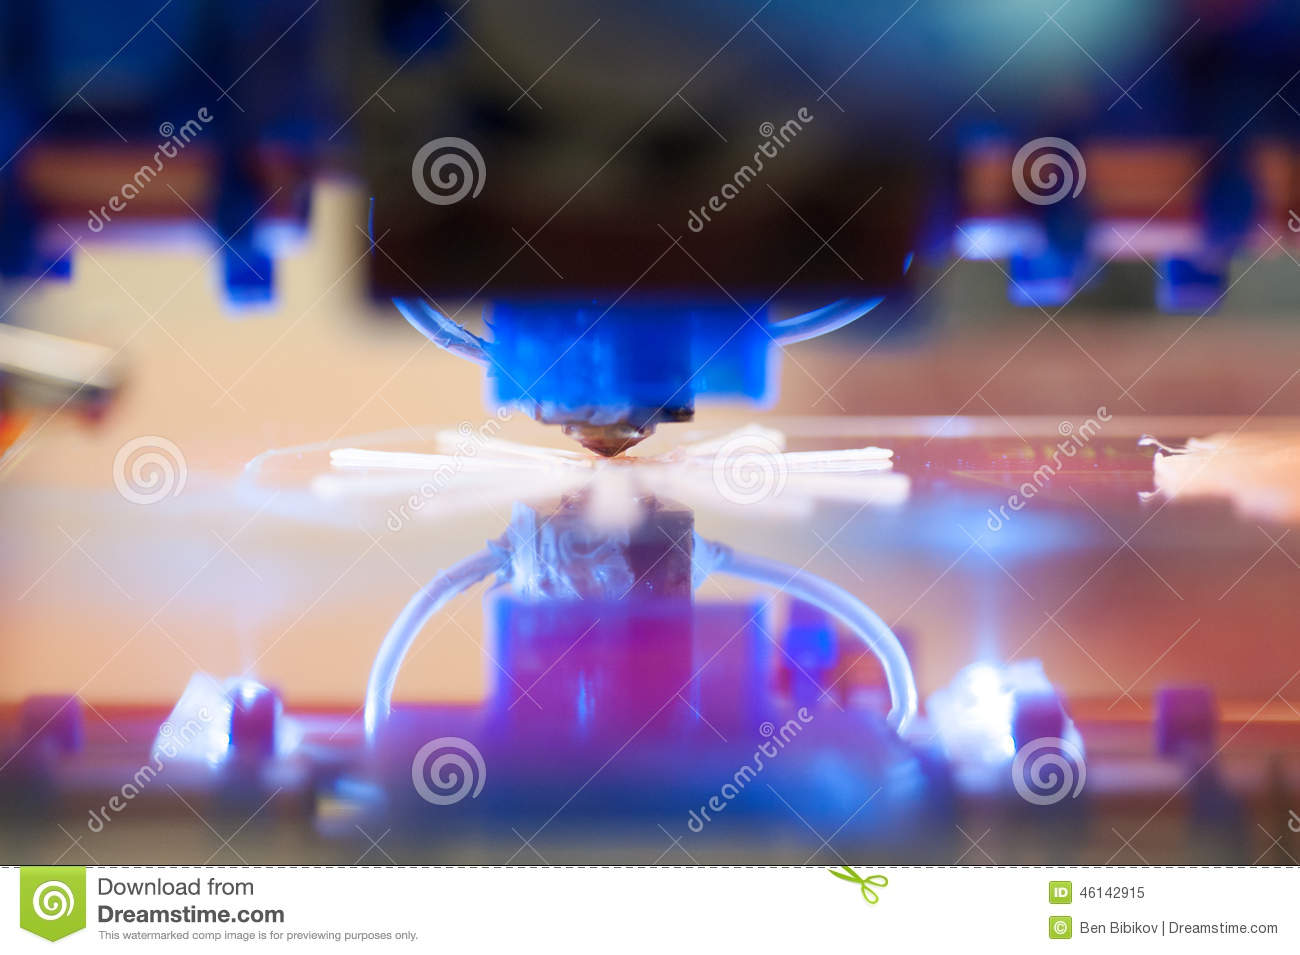 Download Closeup Of 3D Printer Printing Stock Image - Image of production, technology: 46142915